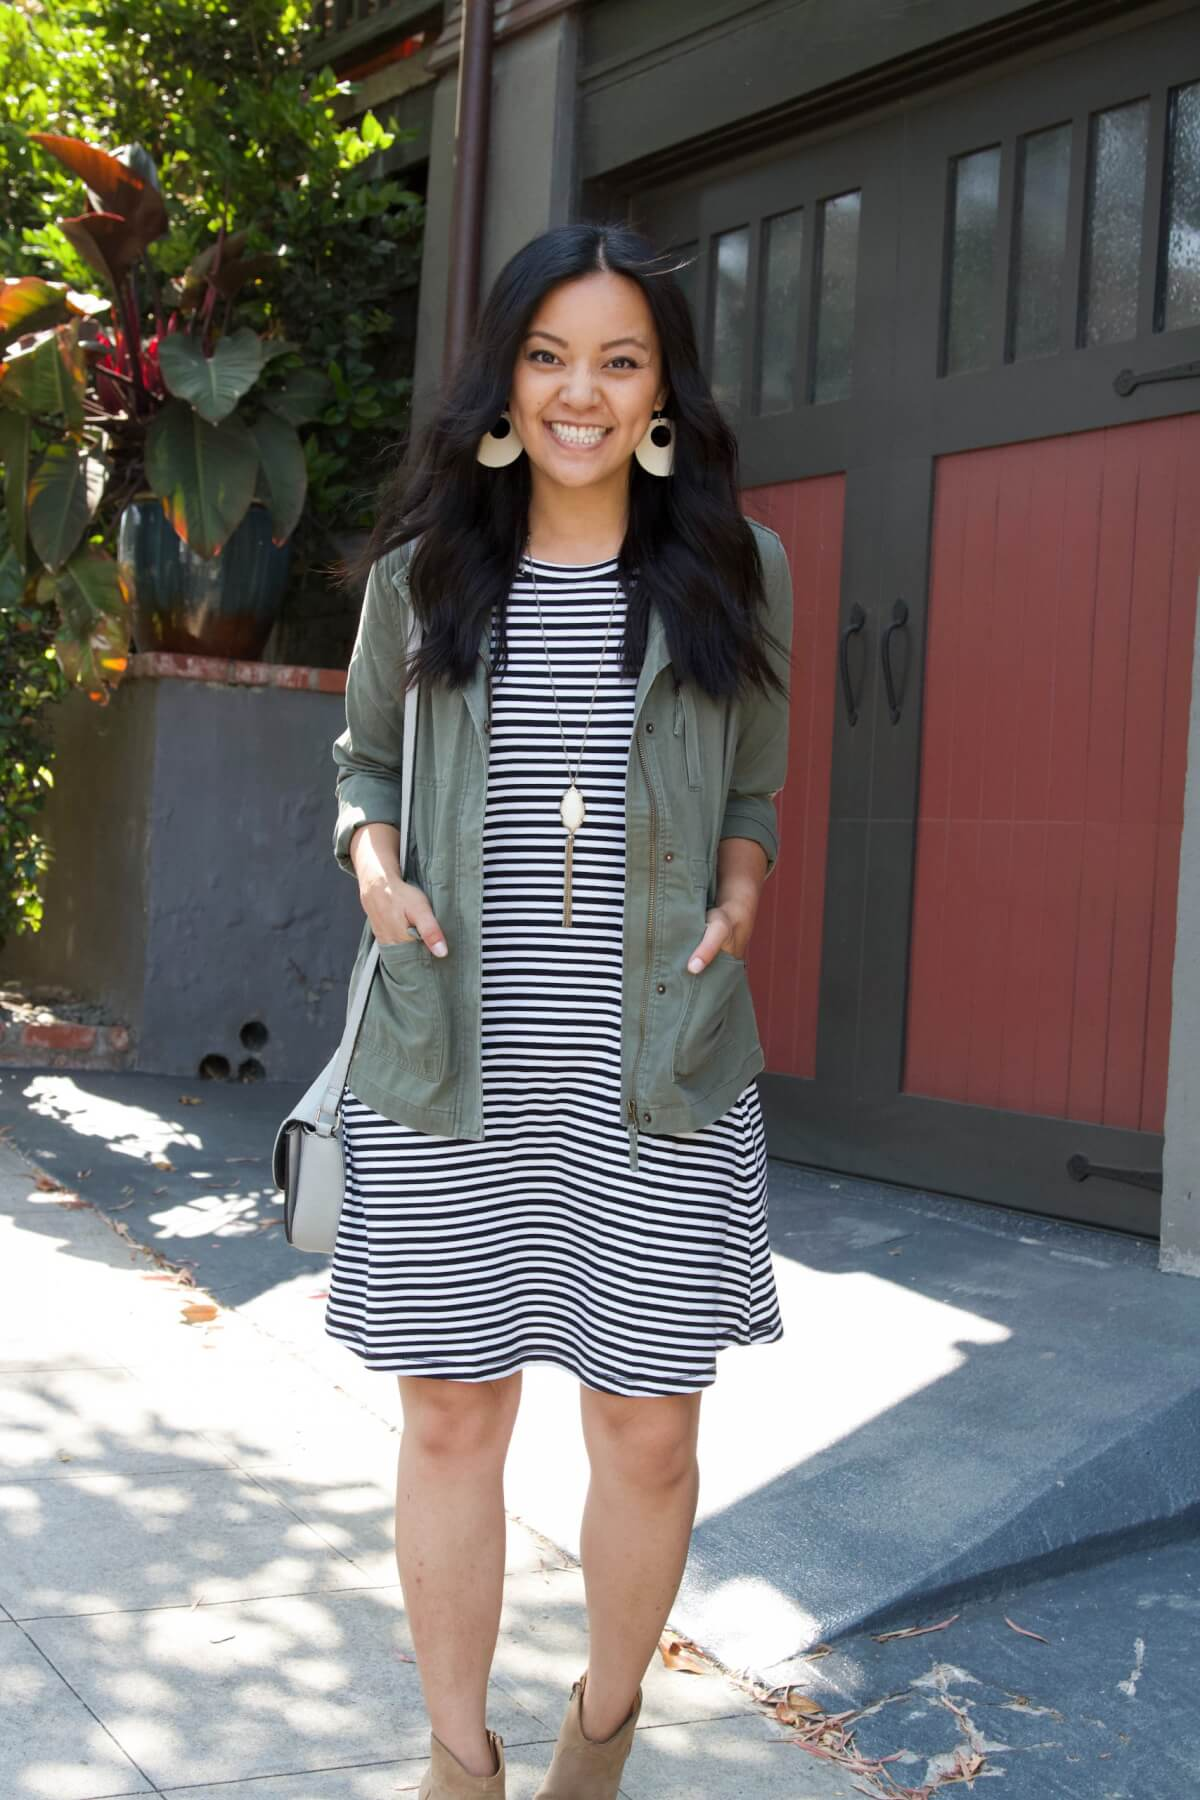 Nicer Casual Outfit for Summer to Early Fall Transition: black and white striped t-shirt dress + olive utility jacket + taupe suede booties + white earrings + tassel pendant necklace + gray crossbody purse